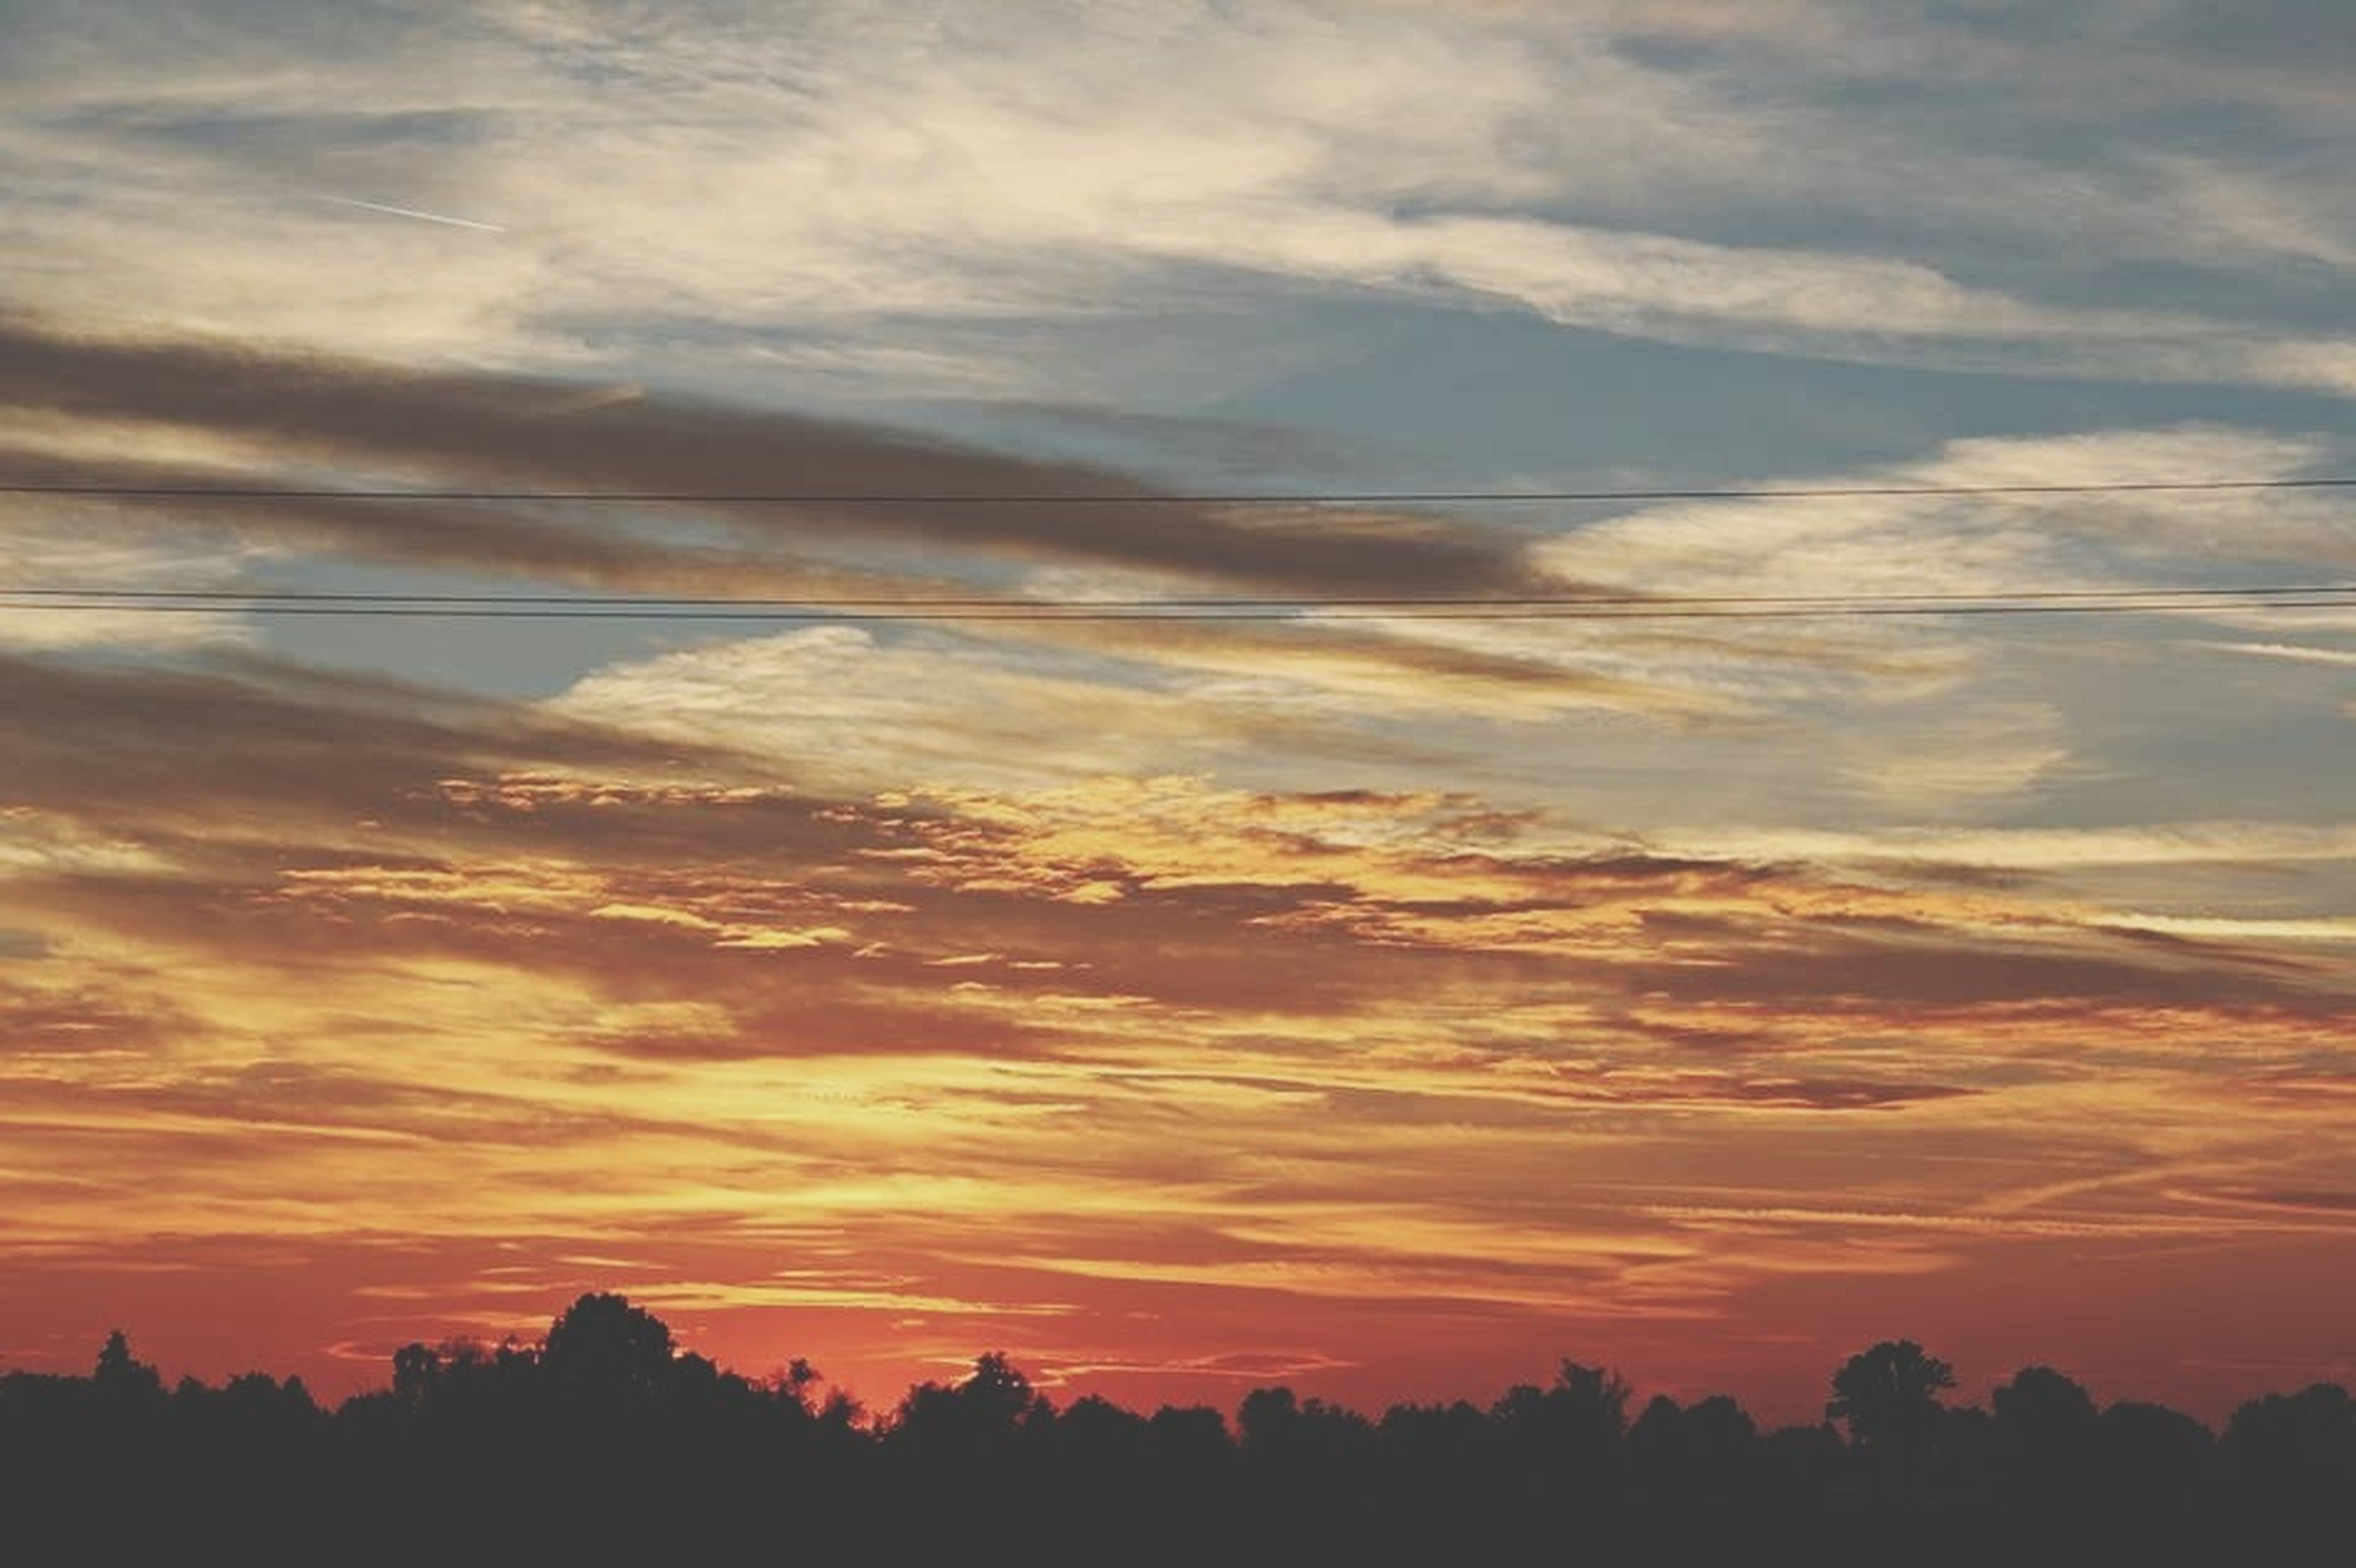 sunset, sky, scenics, tranquil scene, silhouette, tranquility, beauty in nature, cloud - sky, nature, tree, idyllic, cloud, orange color, landscape, majestic, cloudy, dramatic sky, outdoors, no people, non-urban scene